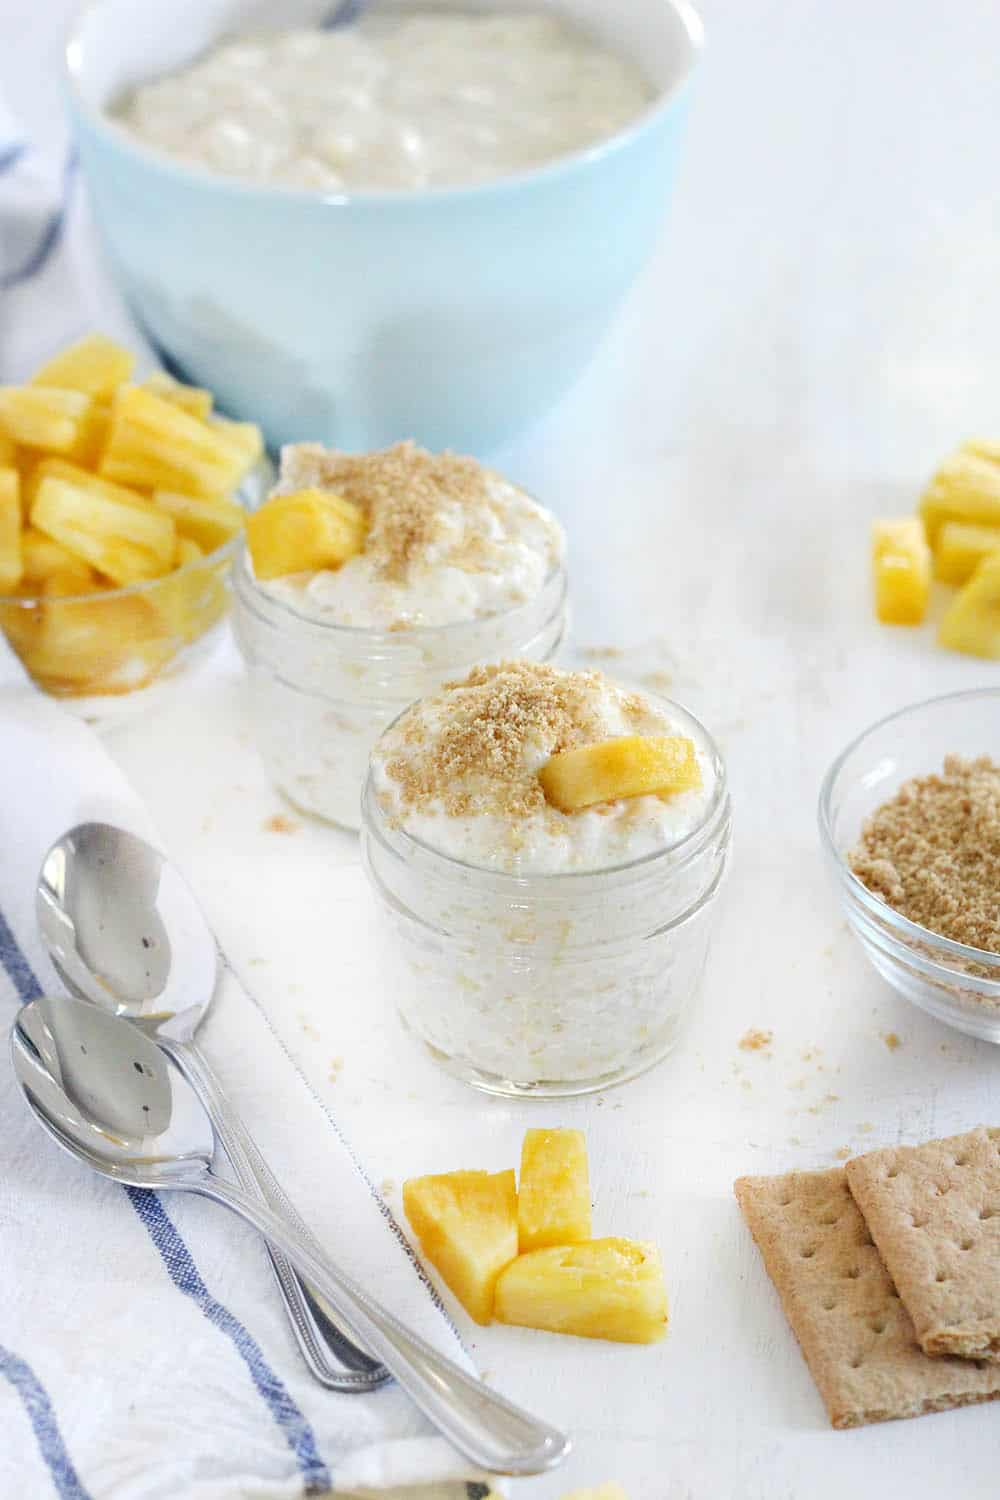 This No-Bake Pineapple Cheesecake Whip recipe uses only 4 ingredients, takes 10 minutes, and has no refined sugar! Made with fresh pineapple and 100% real food ingredients.